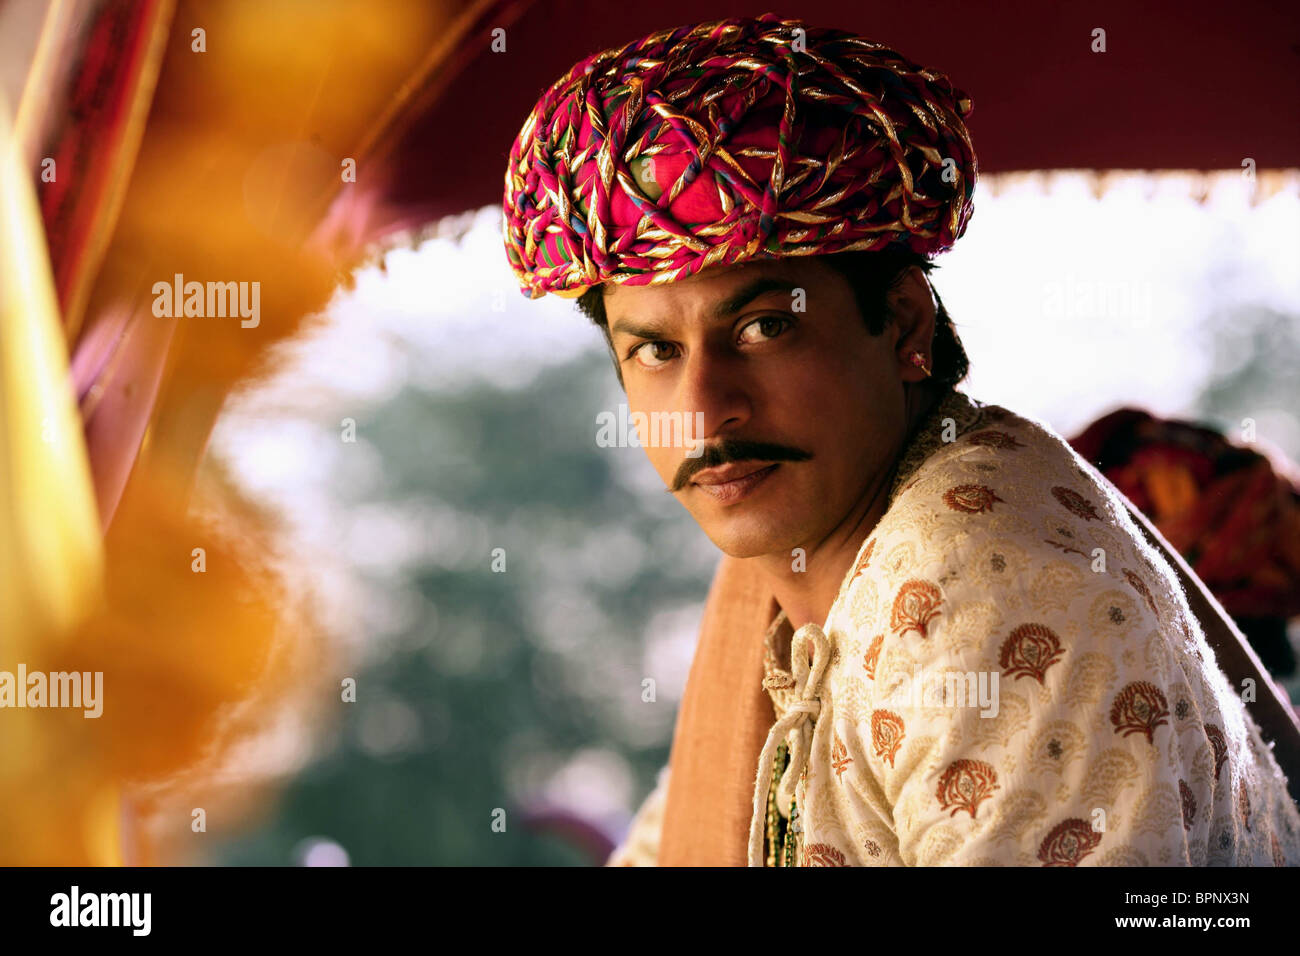 Image result for shahrukh khan paheli